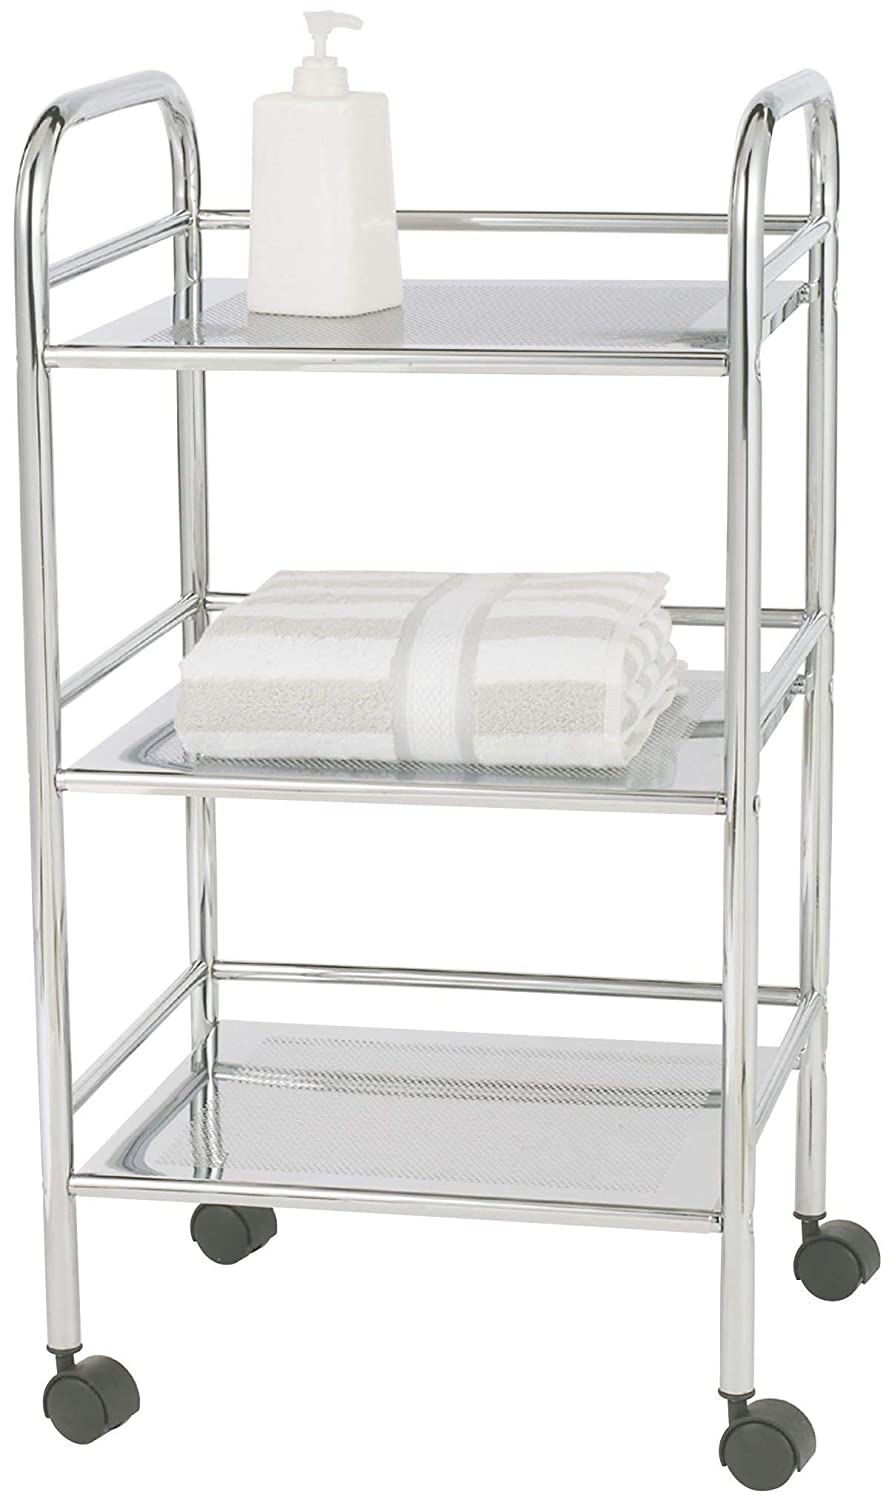 Amazon.com: WENKO 12285100 Exclusive Household and Bathroom Trolley - Mobile Bathroom Rack, 3 Shelves, Metal - Steel, 16.1 x 29.5 x 12.6 Inch, Chrome: Home ...